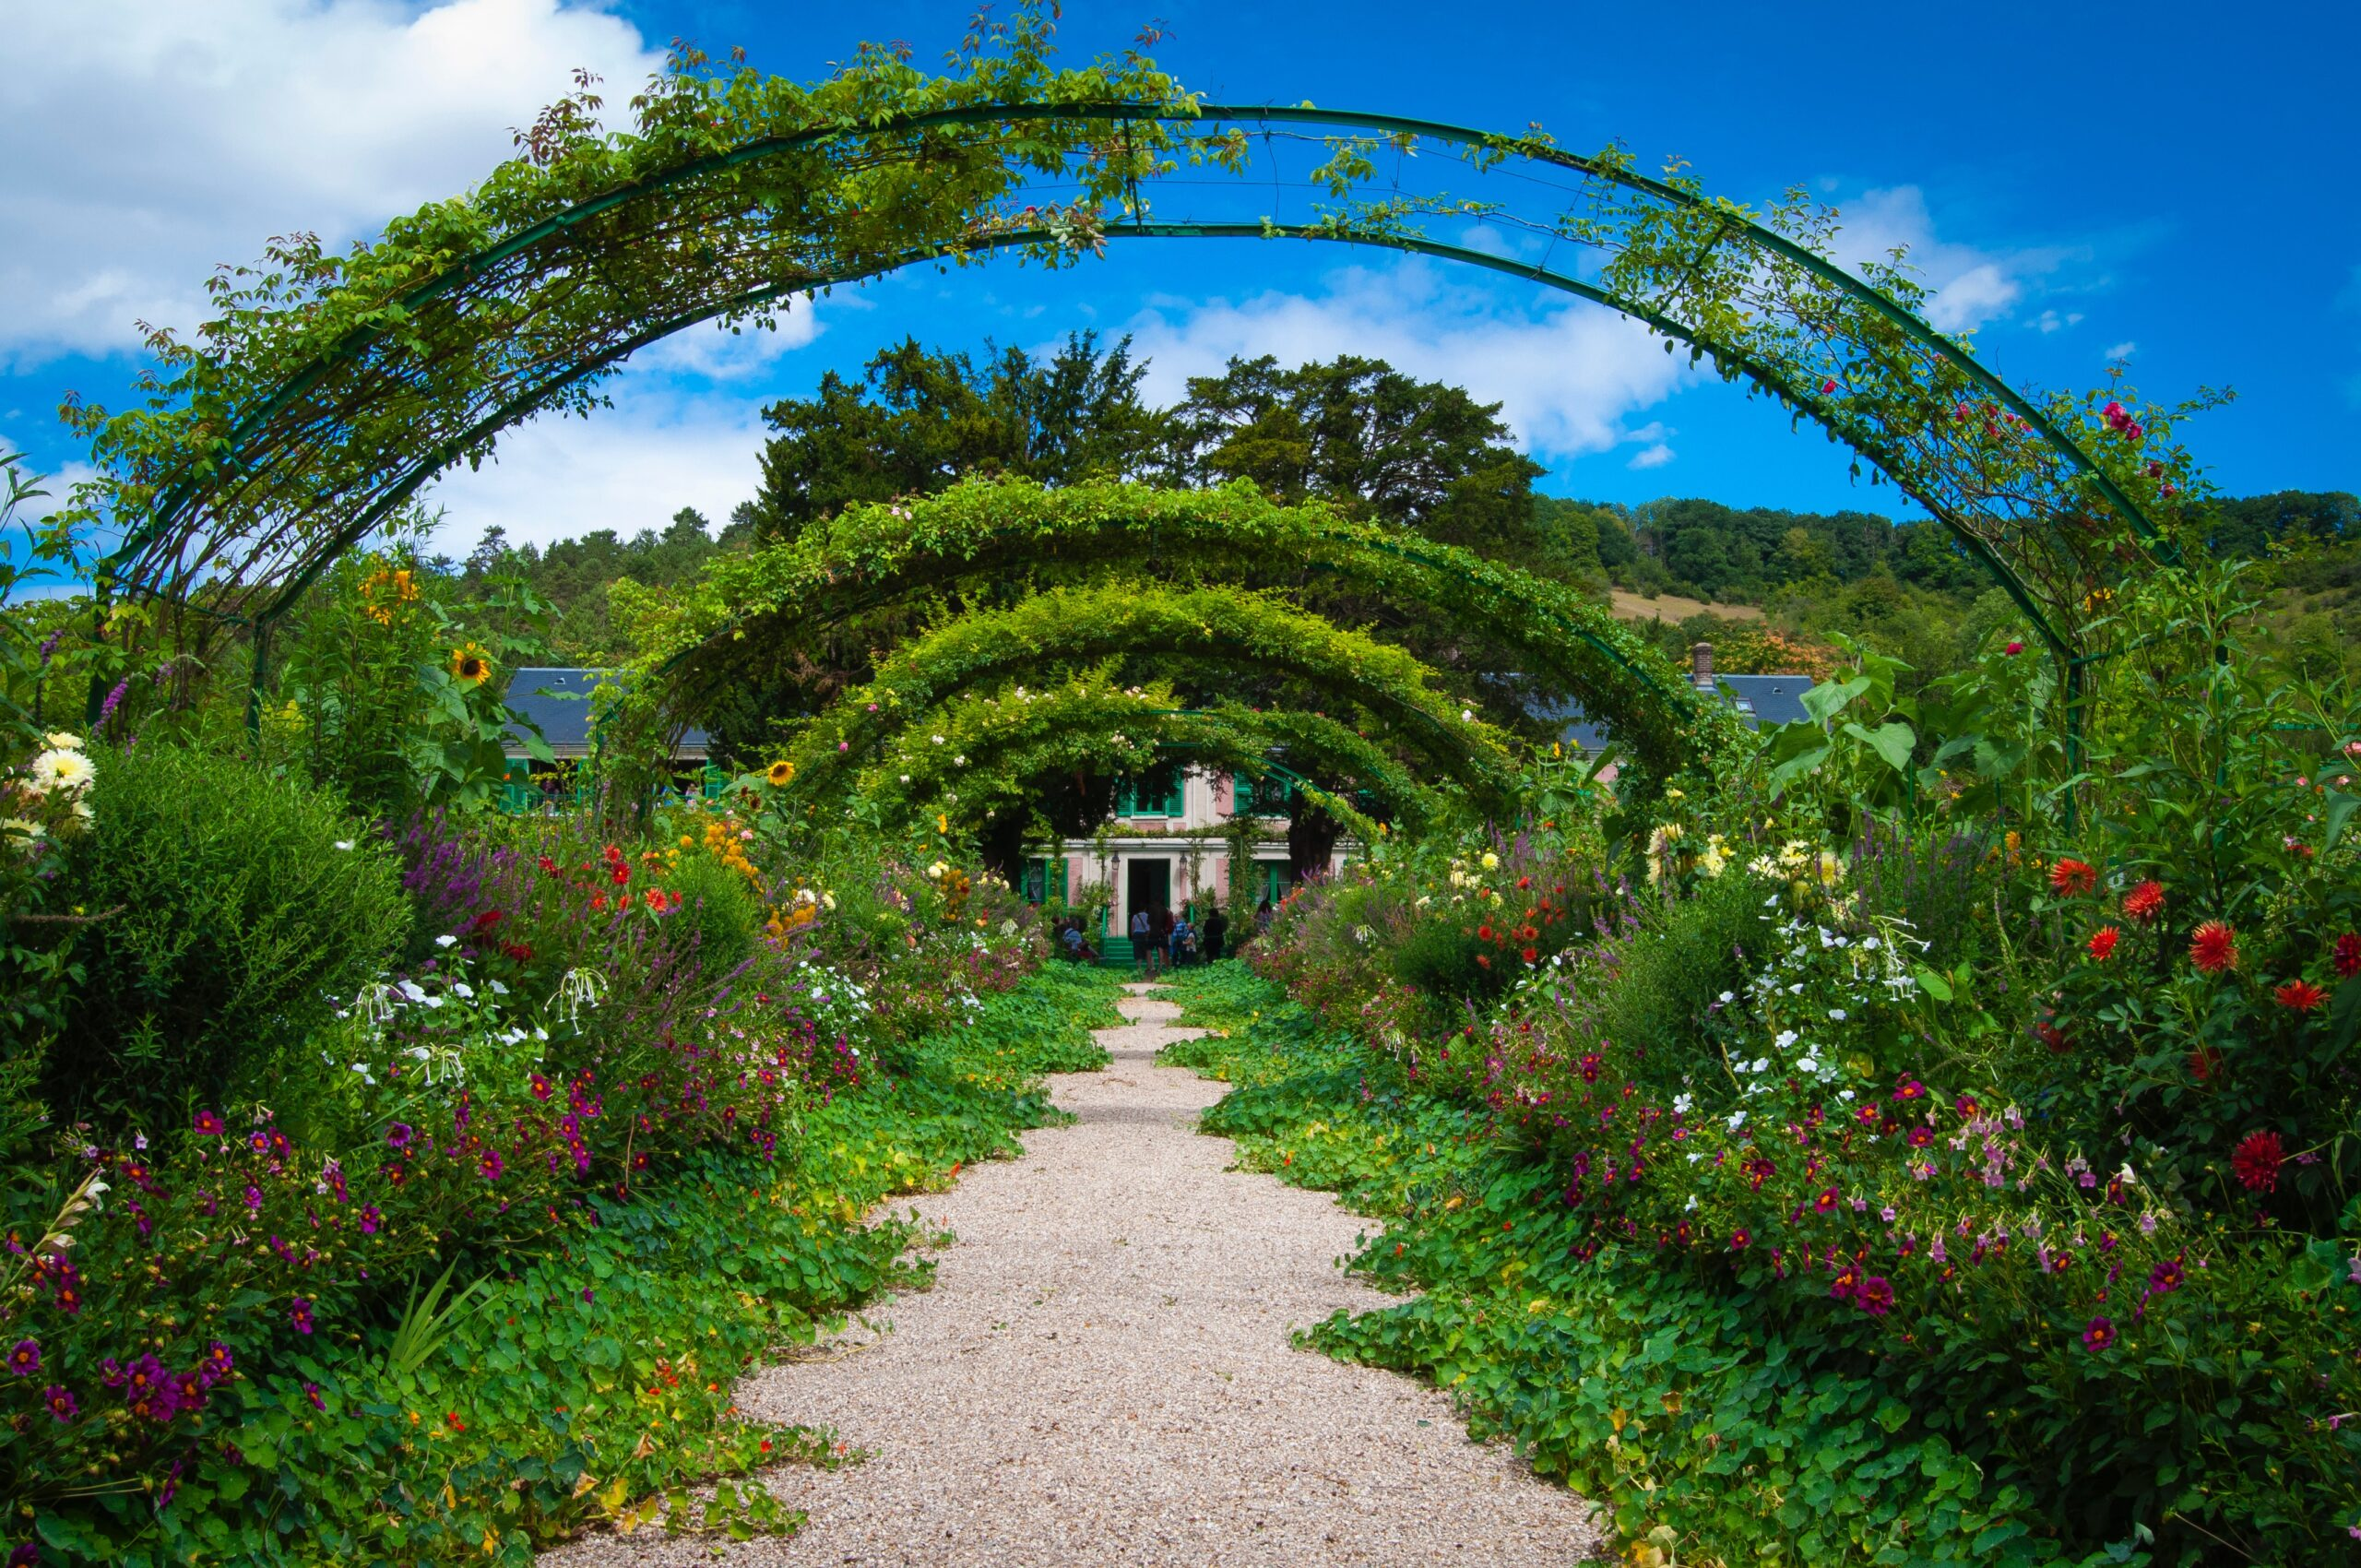 archways of green